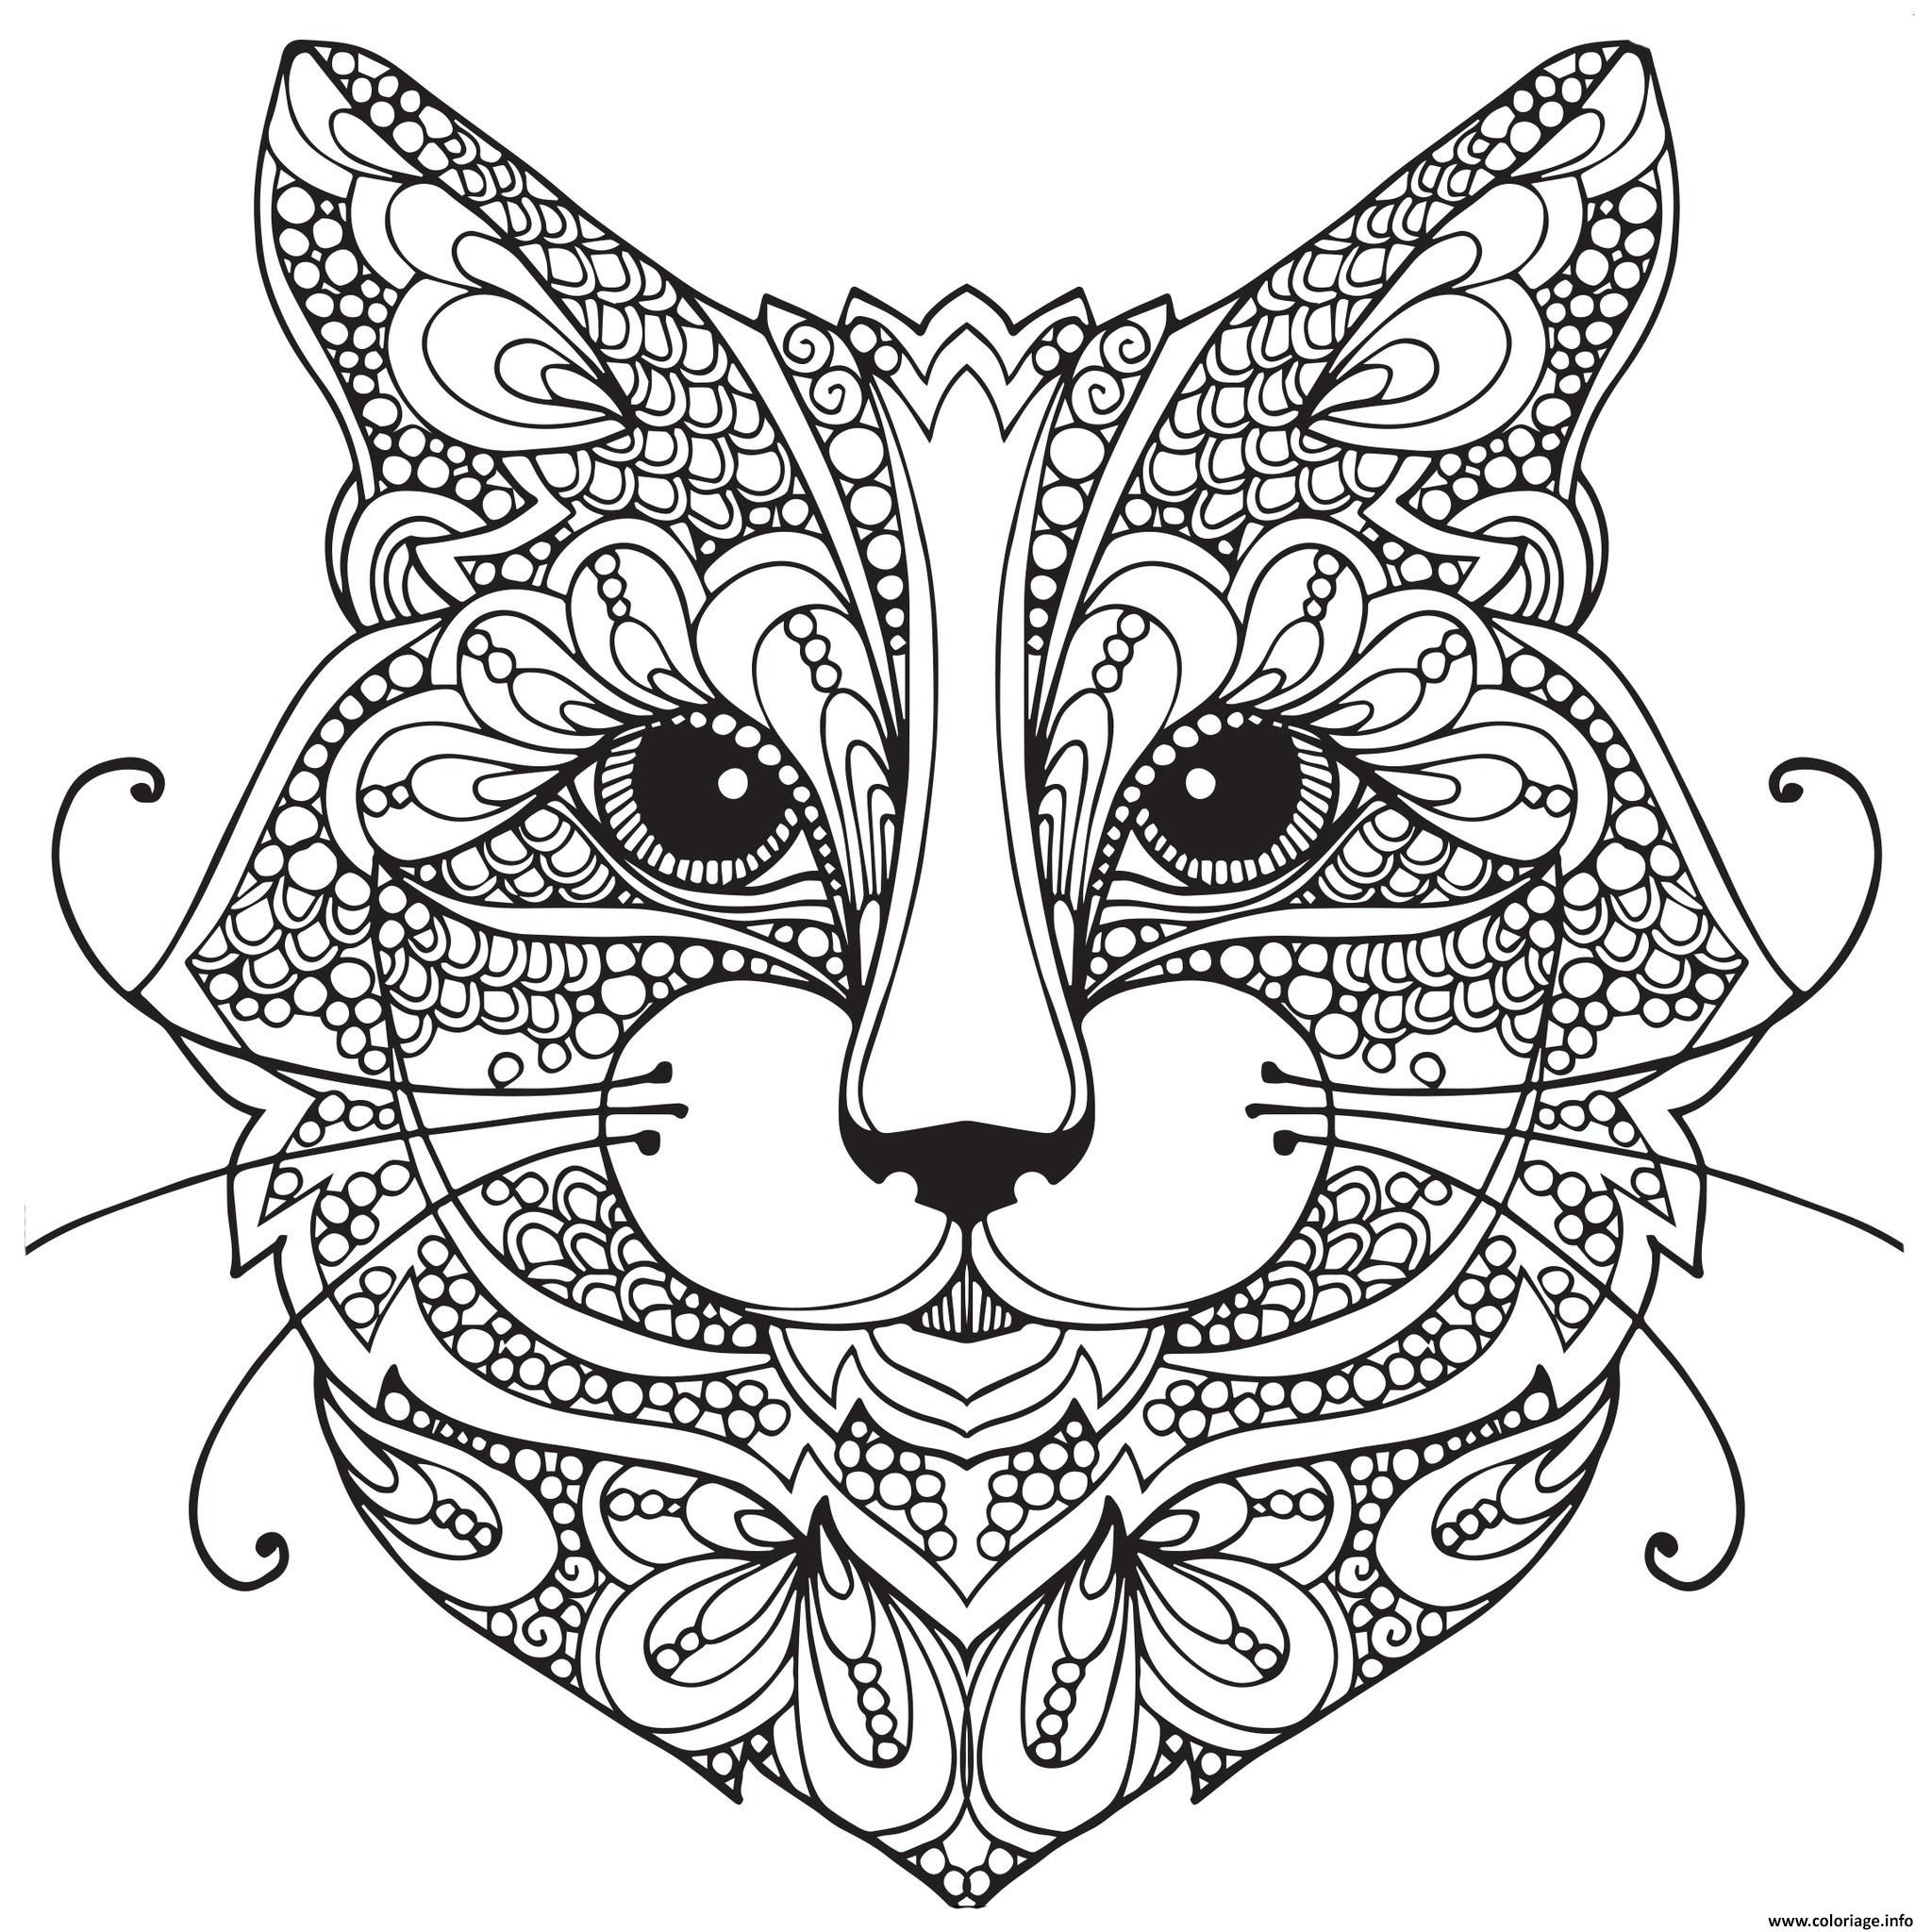 Coloriage chat adulte difficile visage mandala